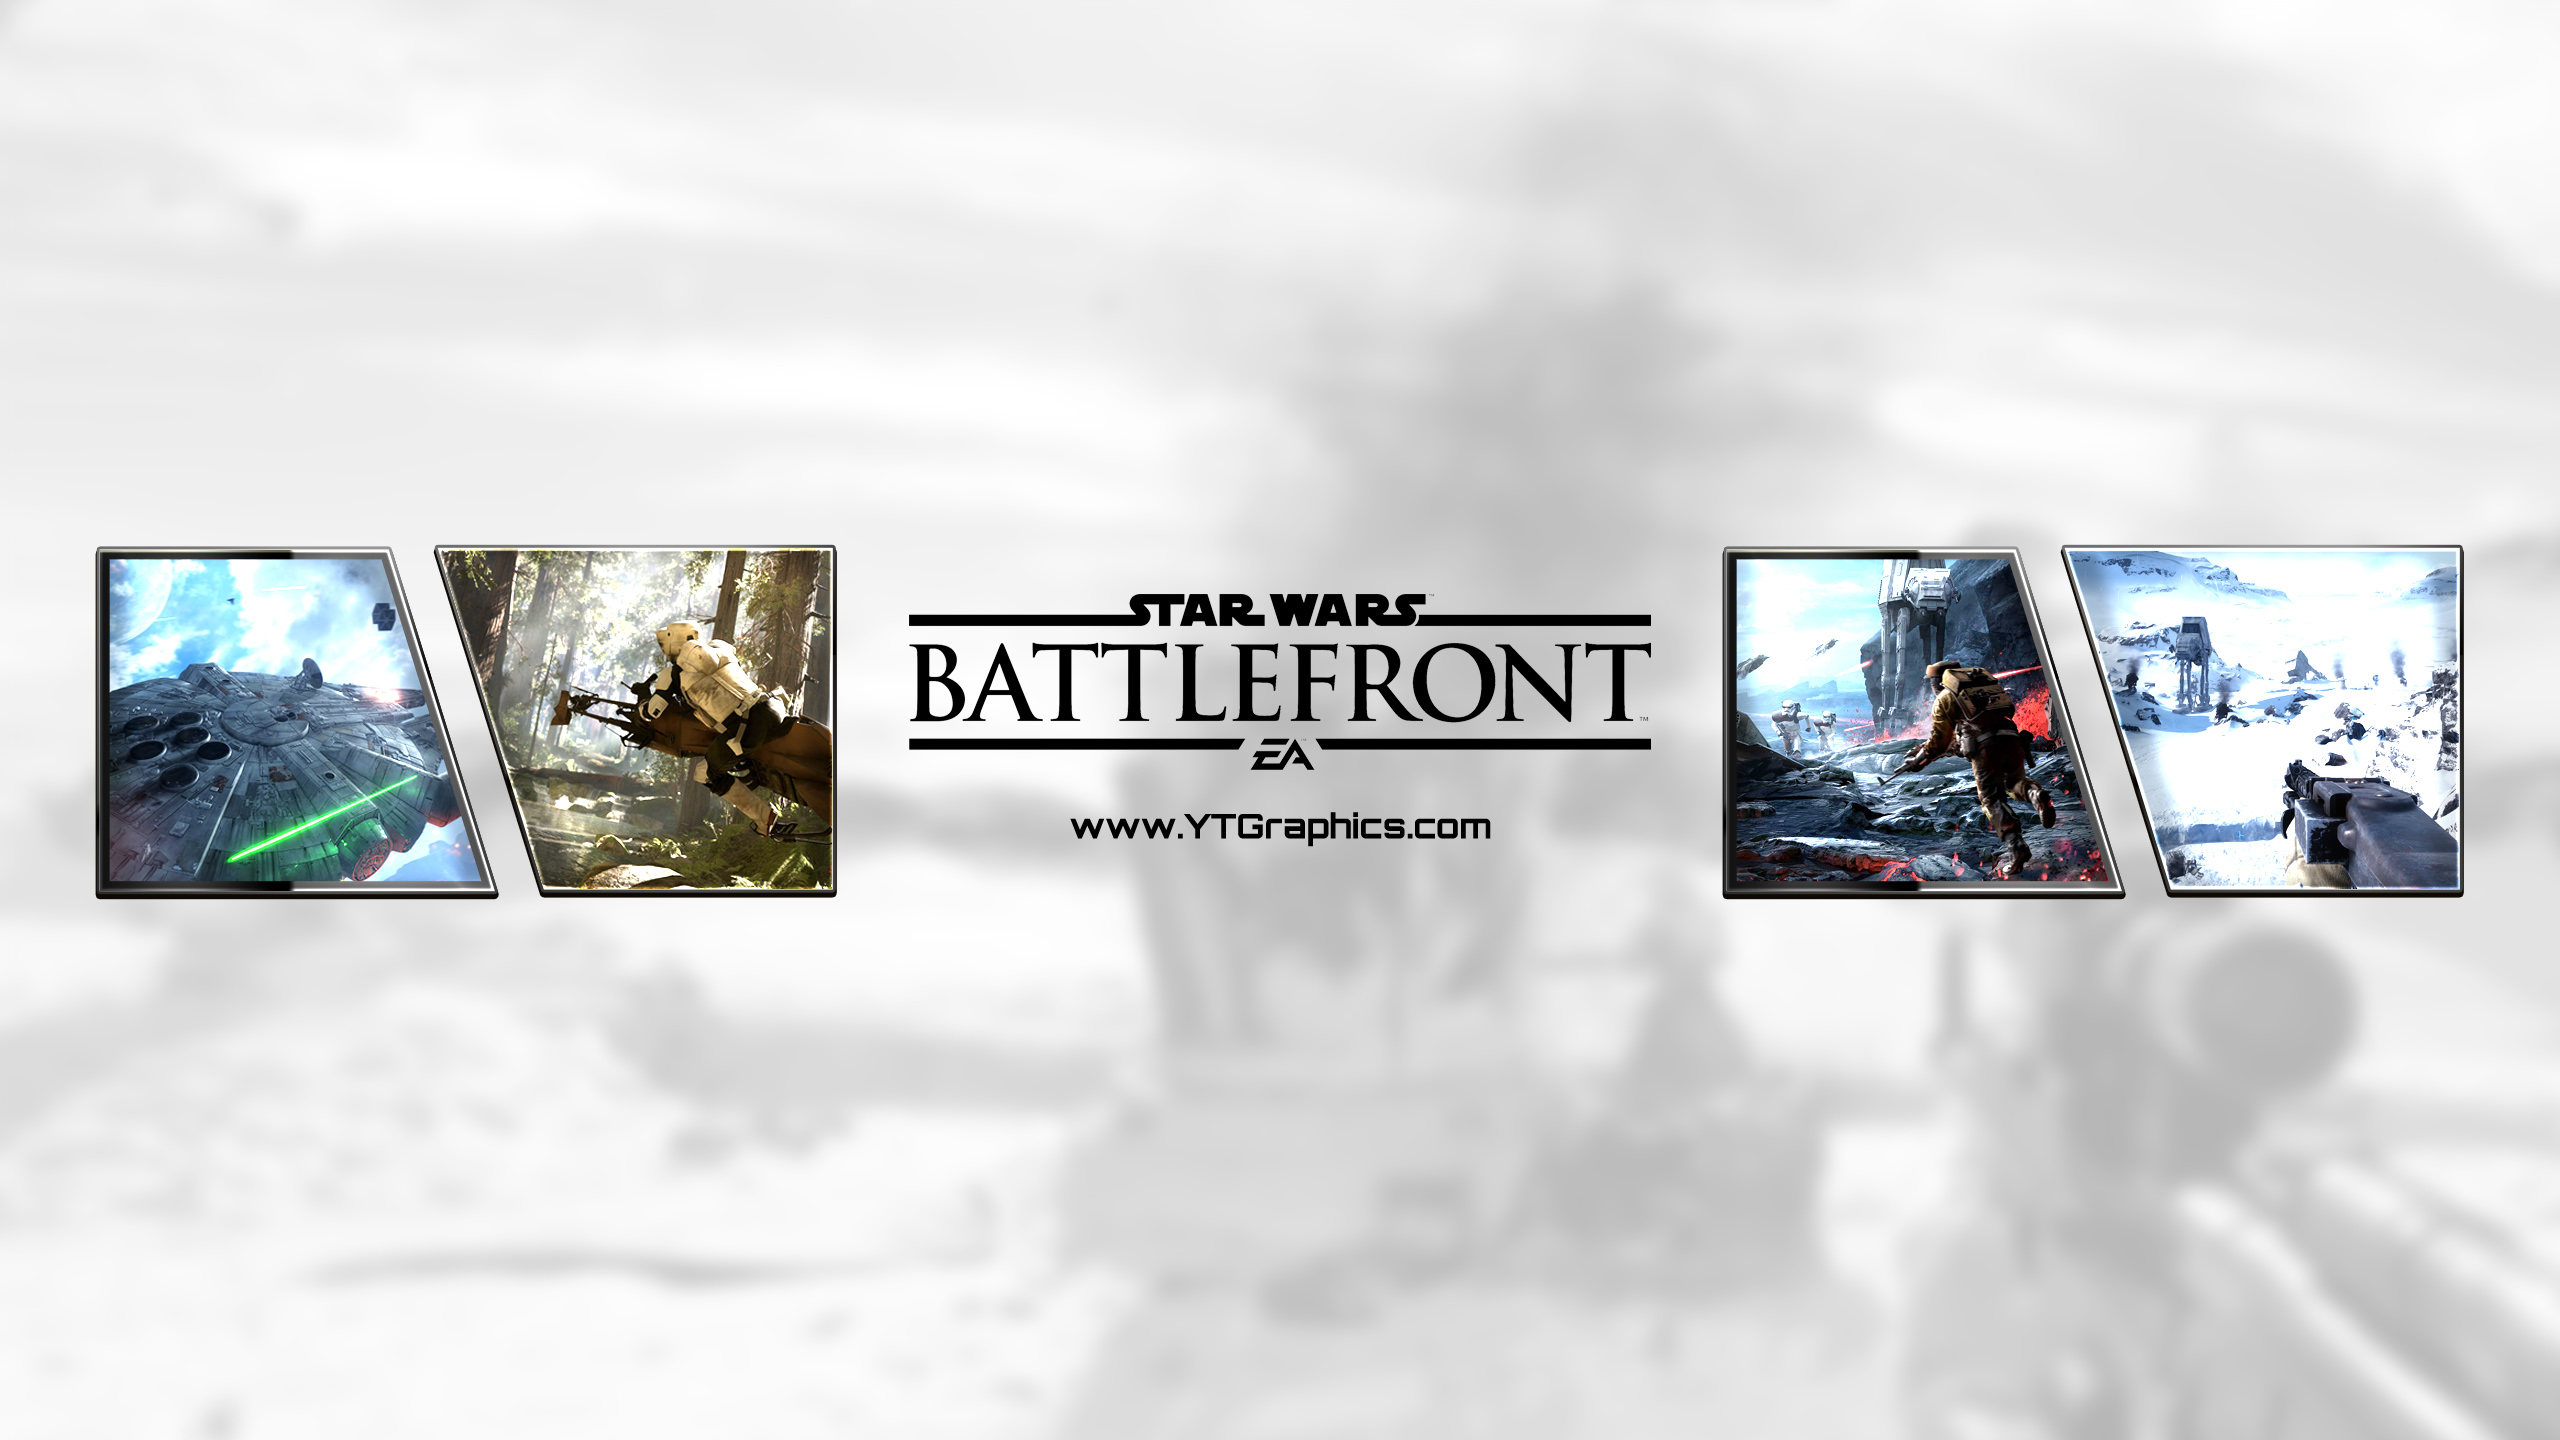 Star Wars: Battlefront - YouTube Channel Art Banners